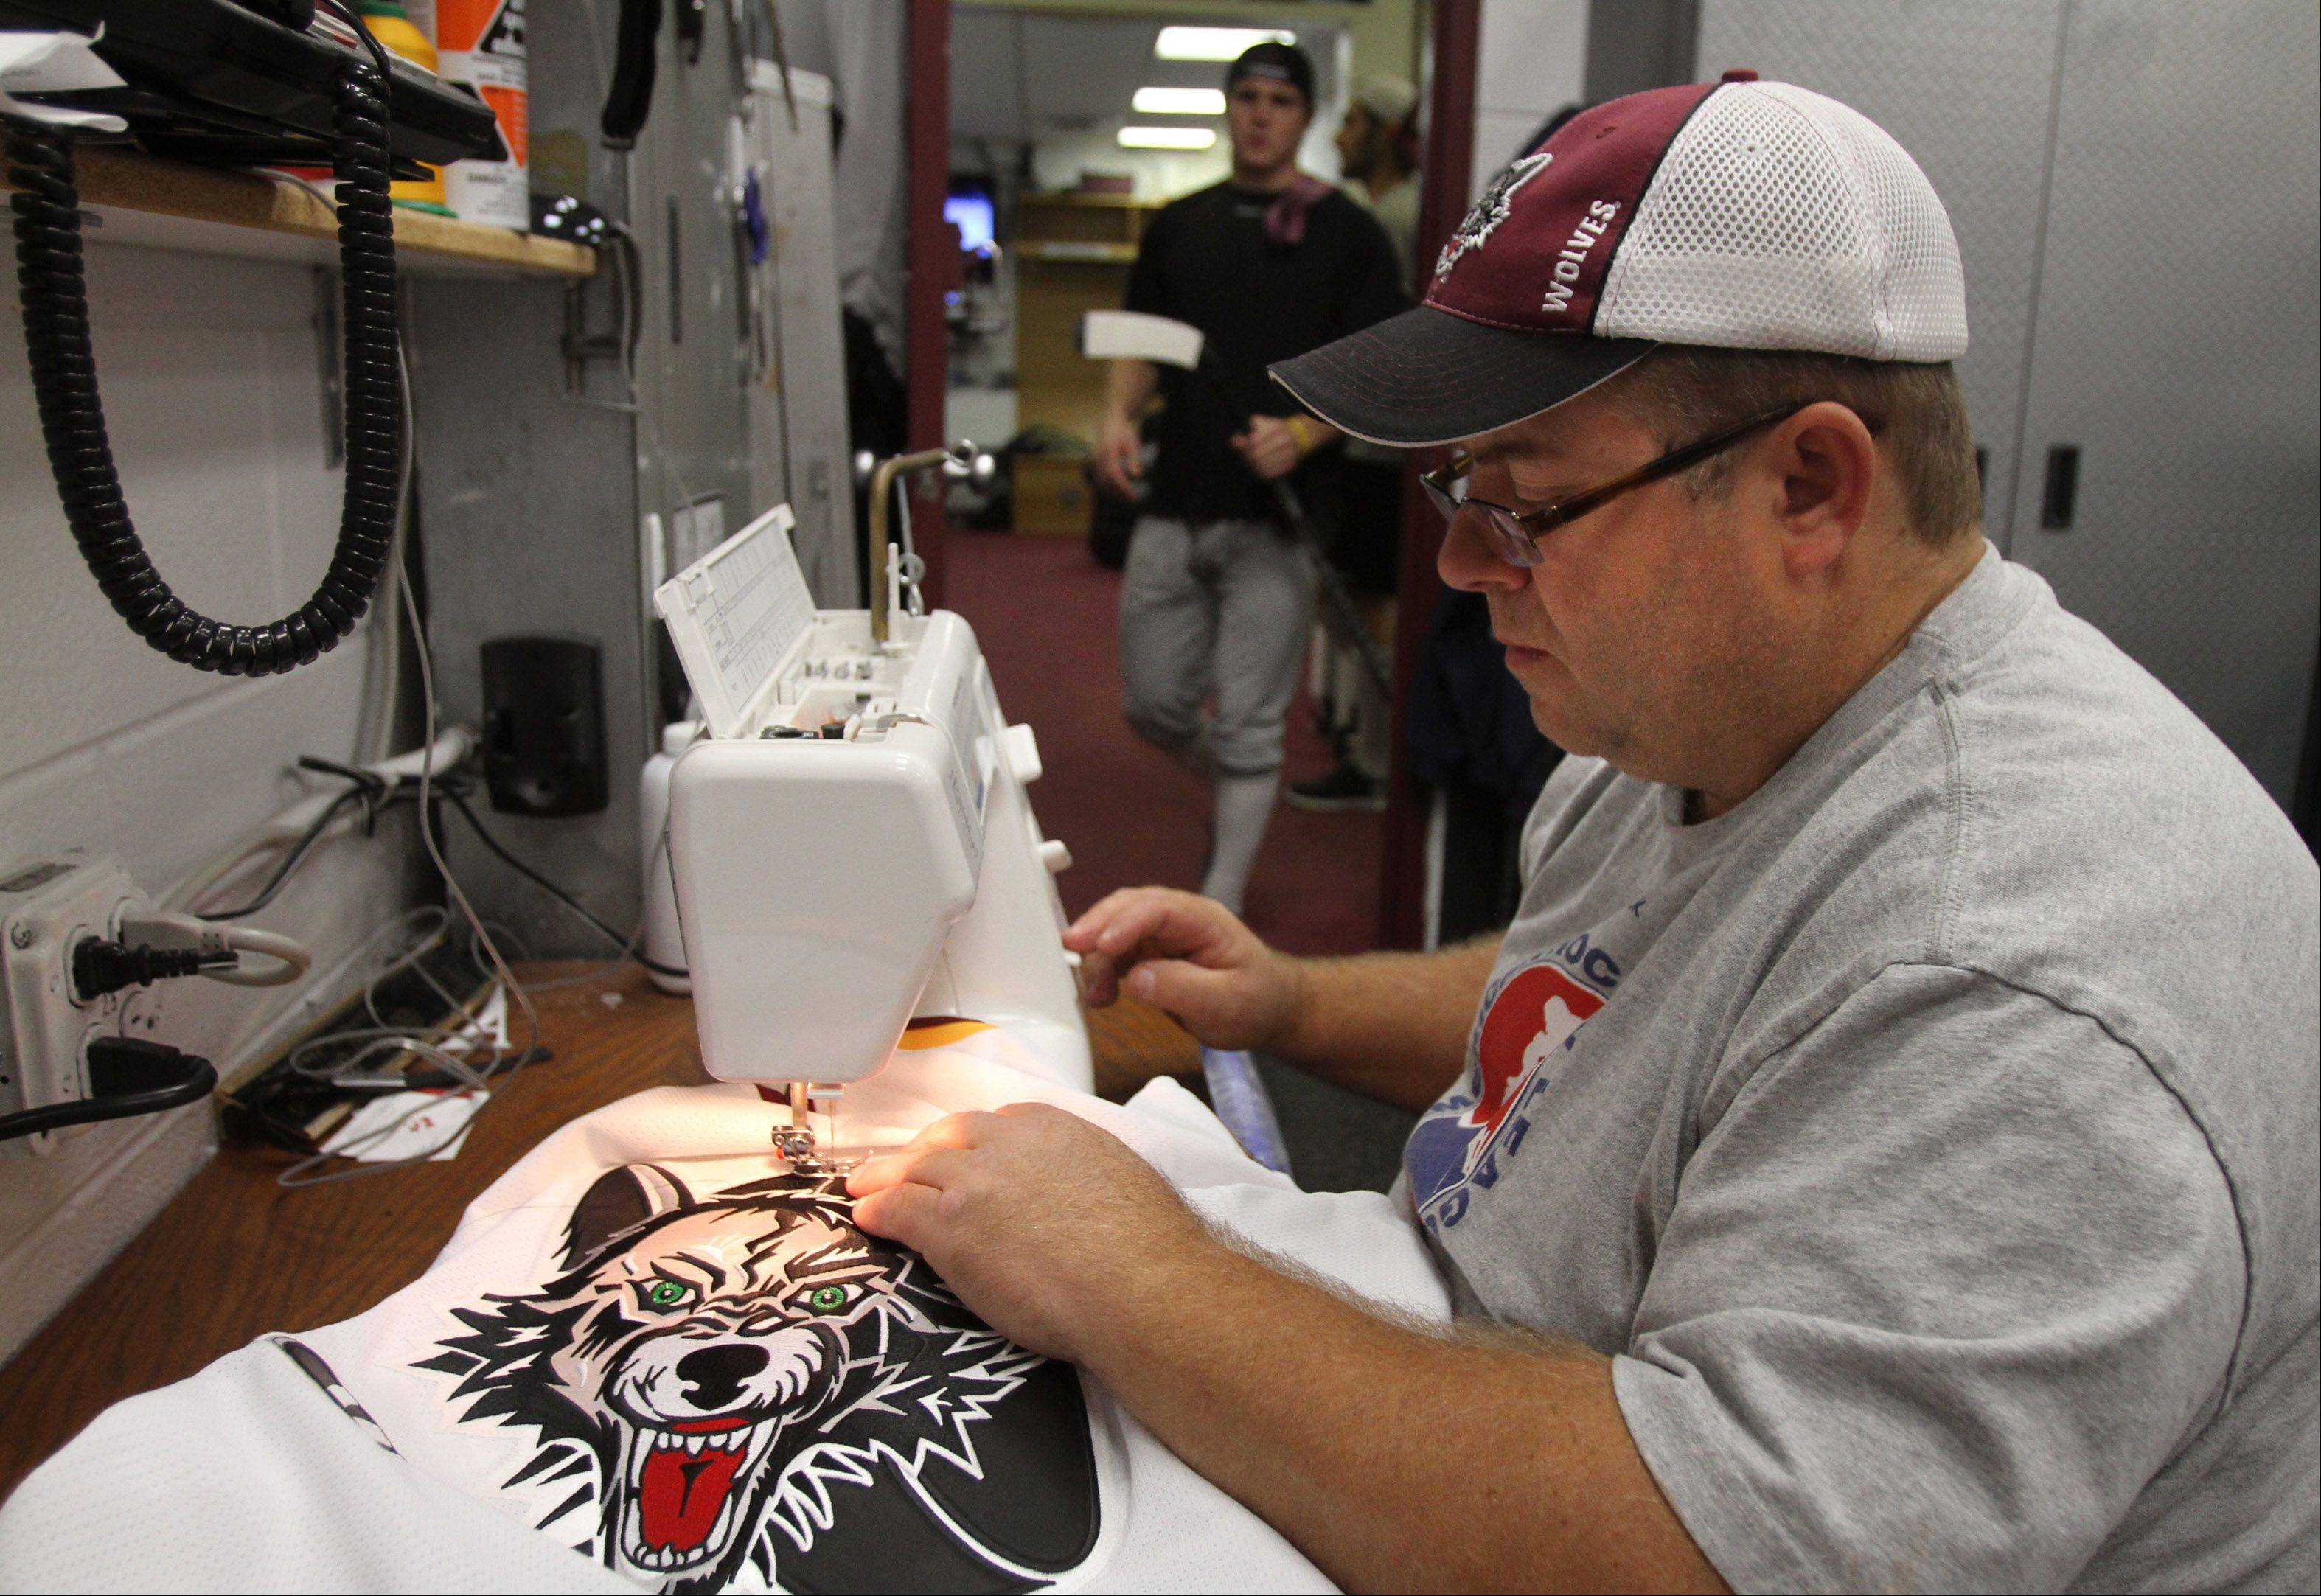 Sewing the team's logos on jerseys is part of the job for head equipment manager Craig Kogut.